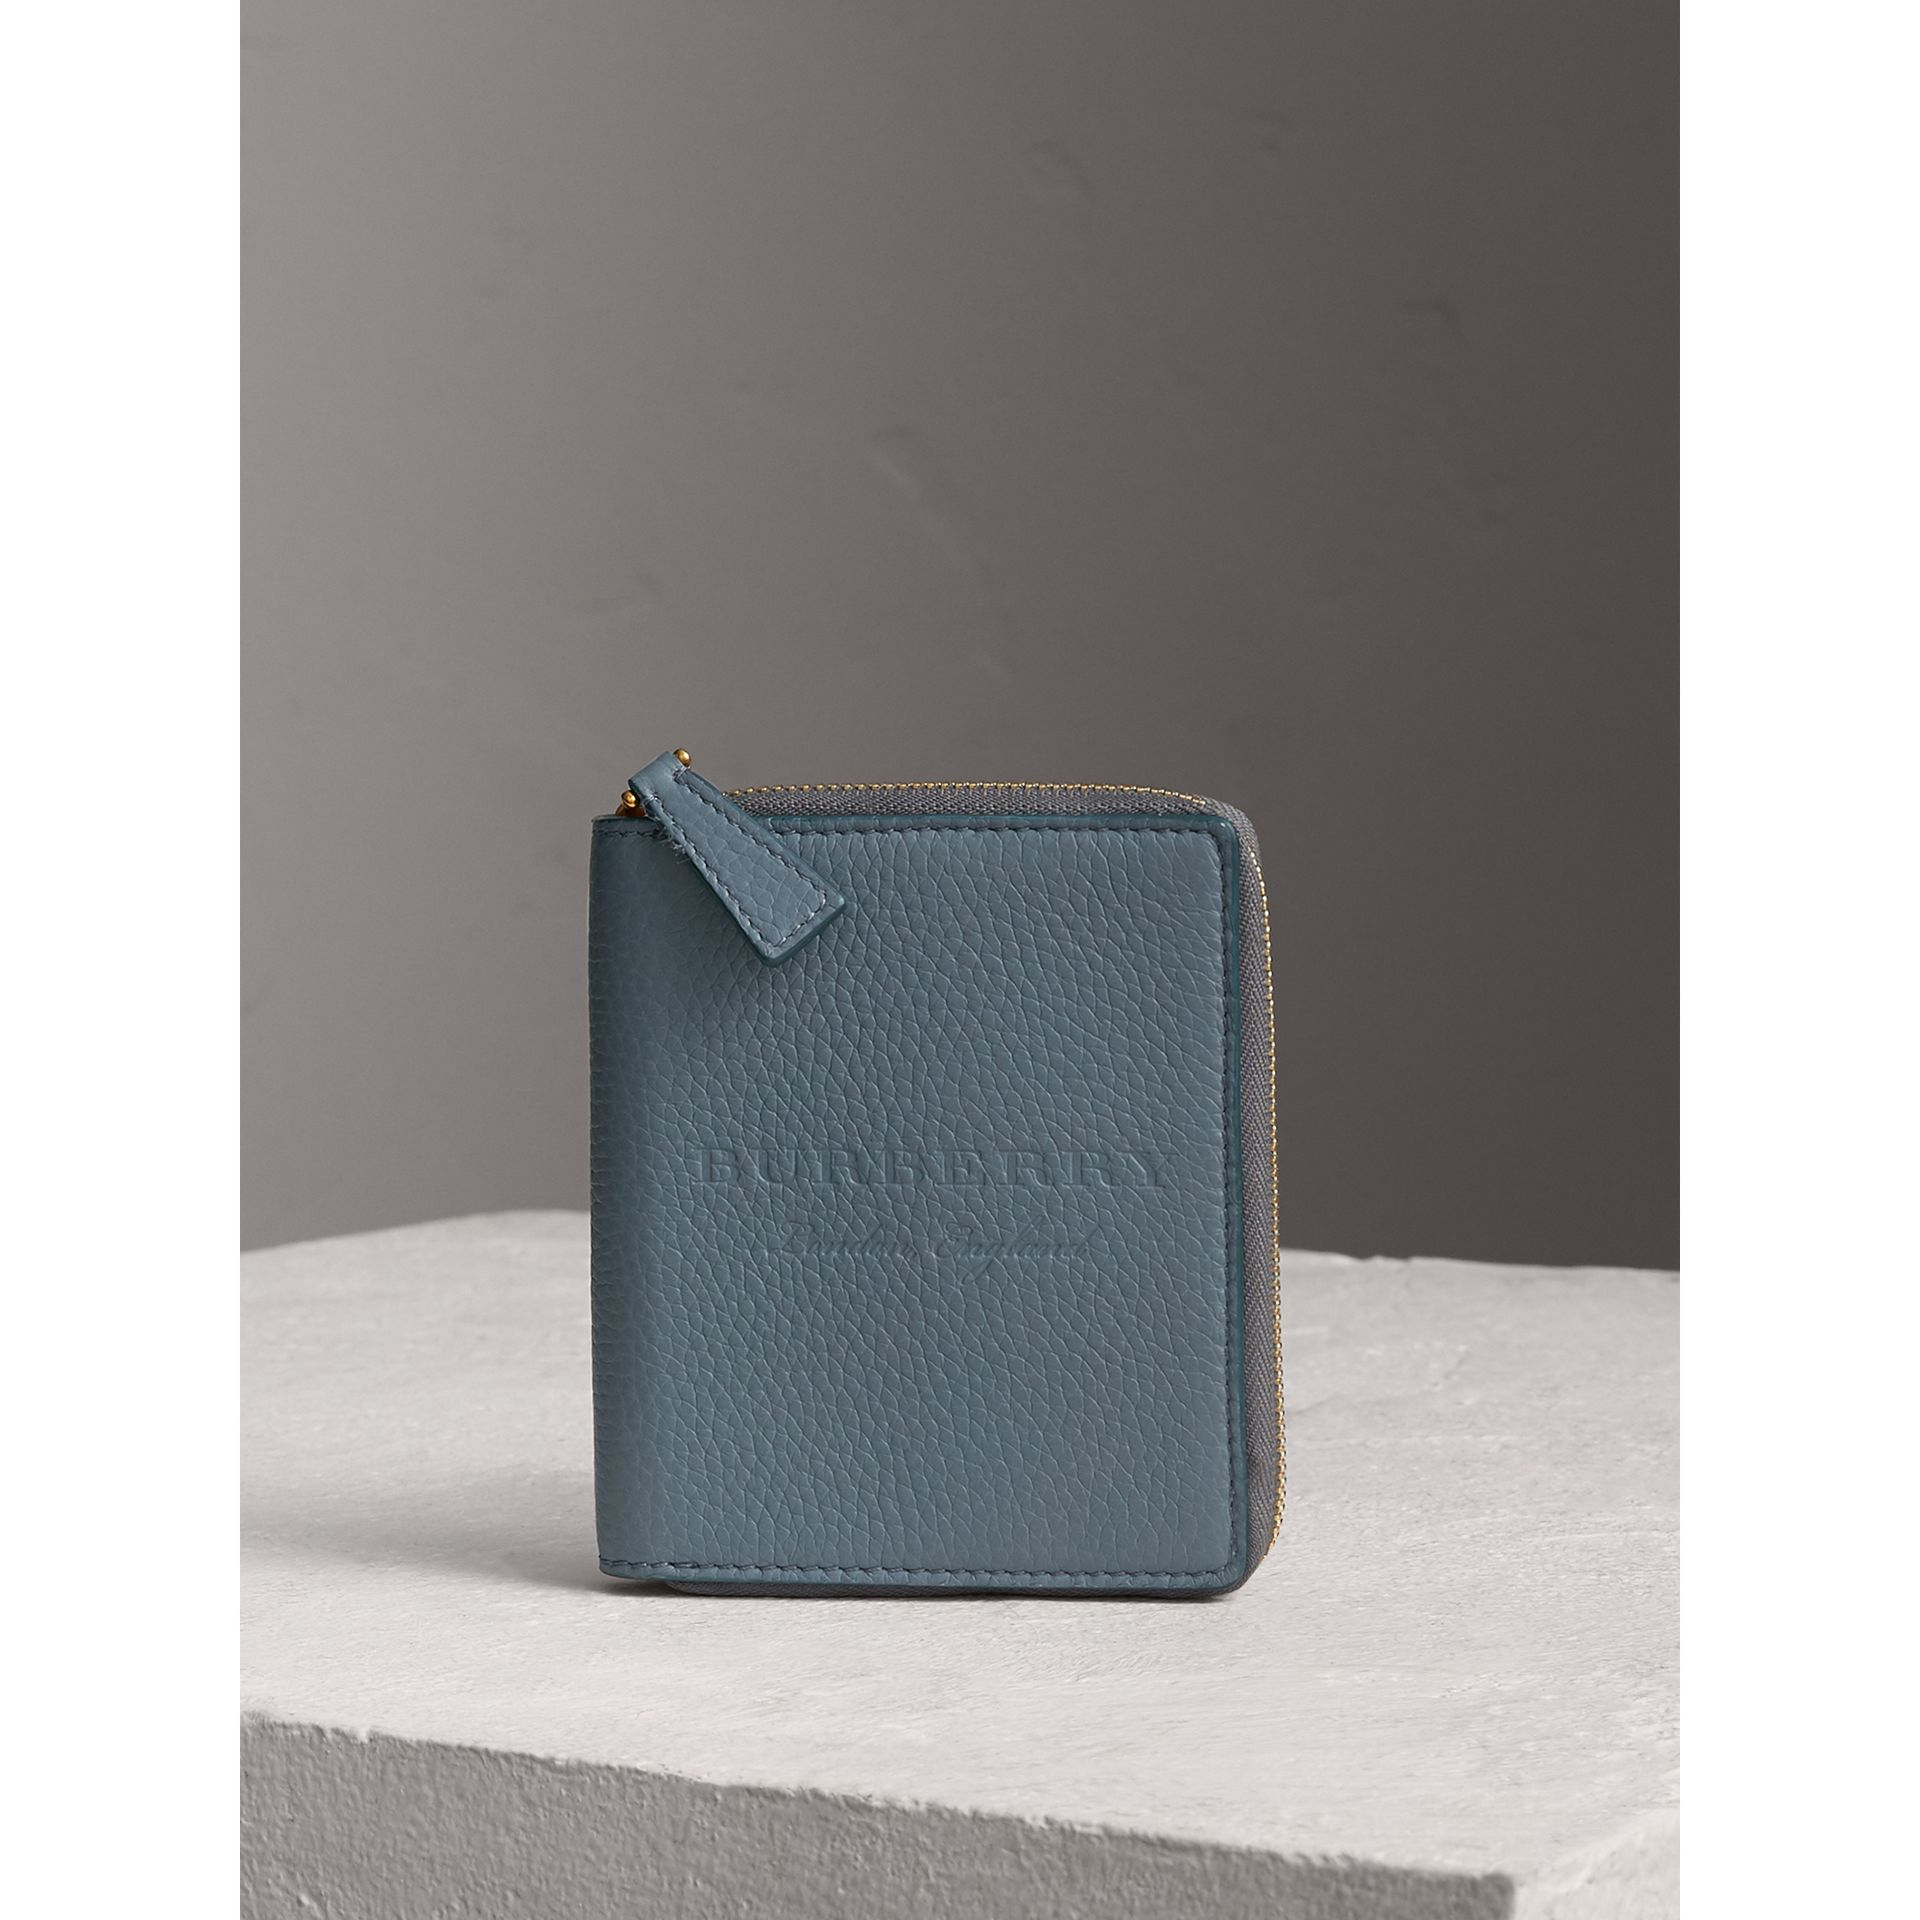 Embossed Grainy Leather Ziparound A6 Notebook Case in Dusty Teal Blue | Burberry United States - gallery image 4